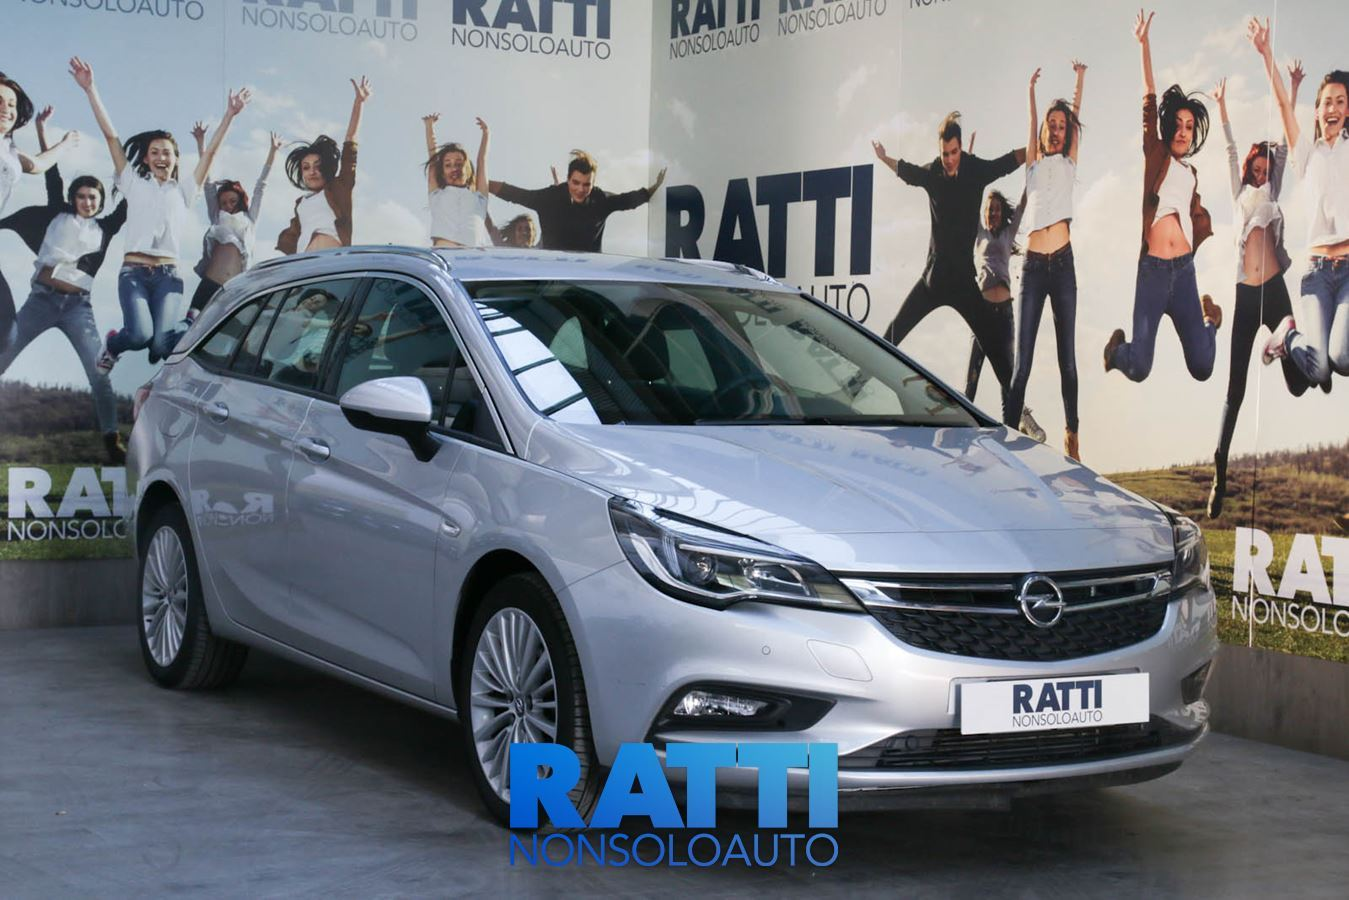 OPEL Astra 1.6 MDE 110CV Sports Tourer Innovation GAN SOVEREIGN SILVER cambio Manuale Diesel Aziendale station wagon 5 porte 5 posti EURO 6